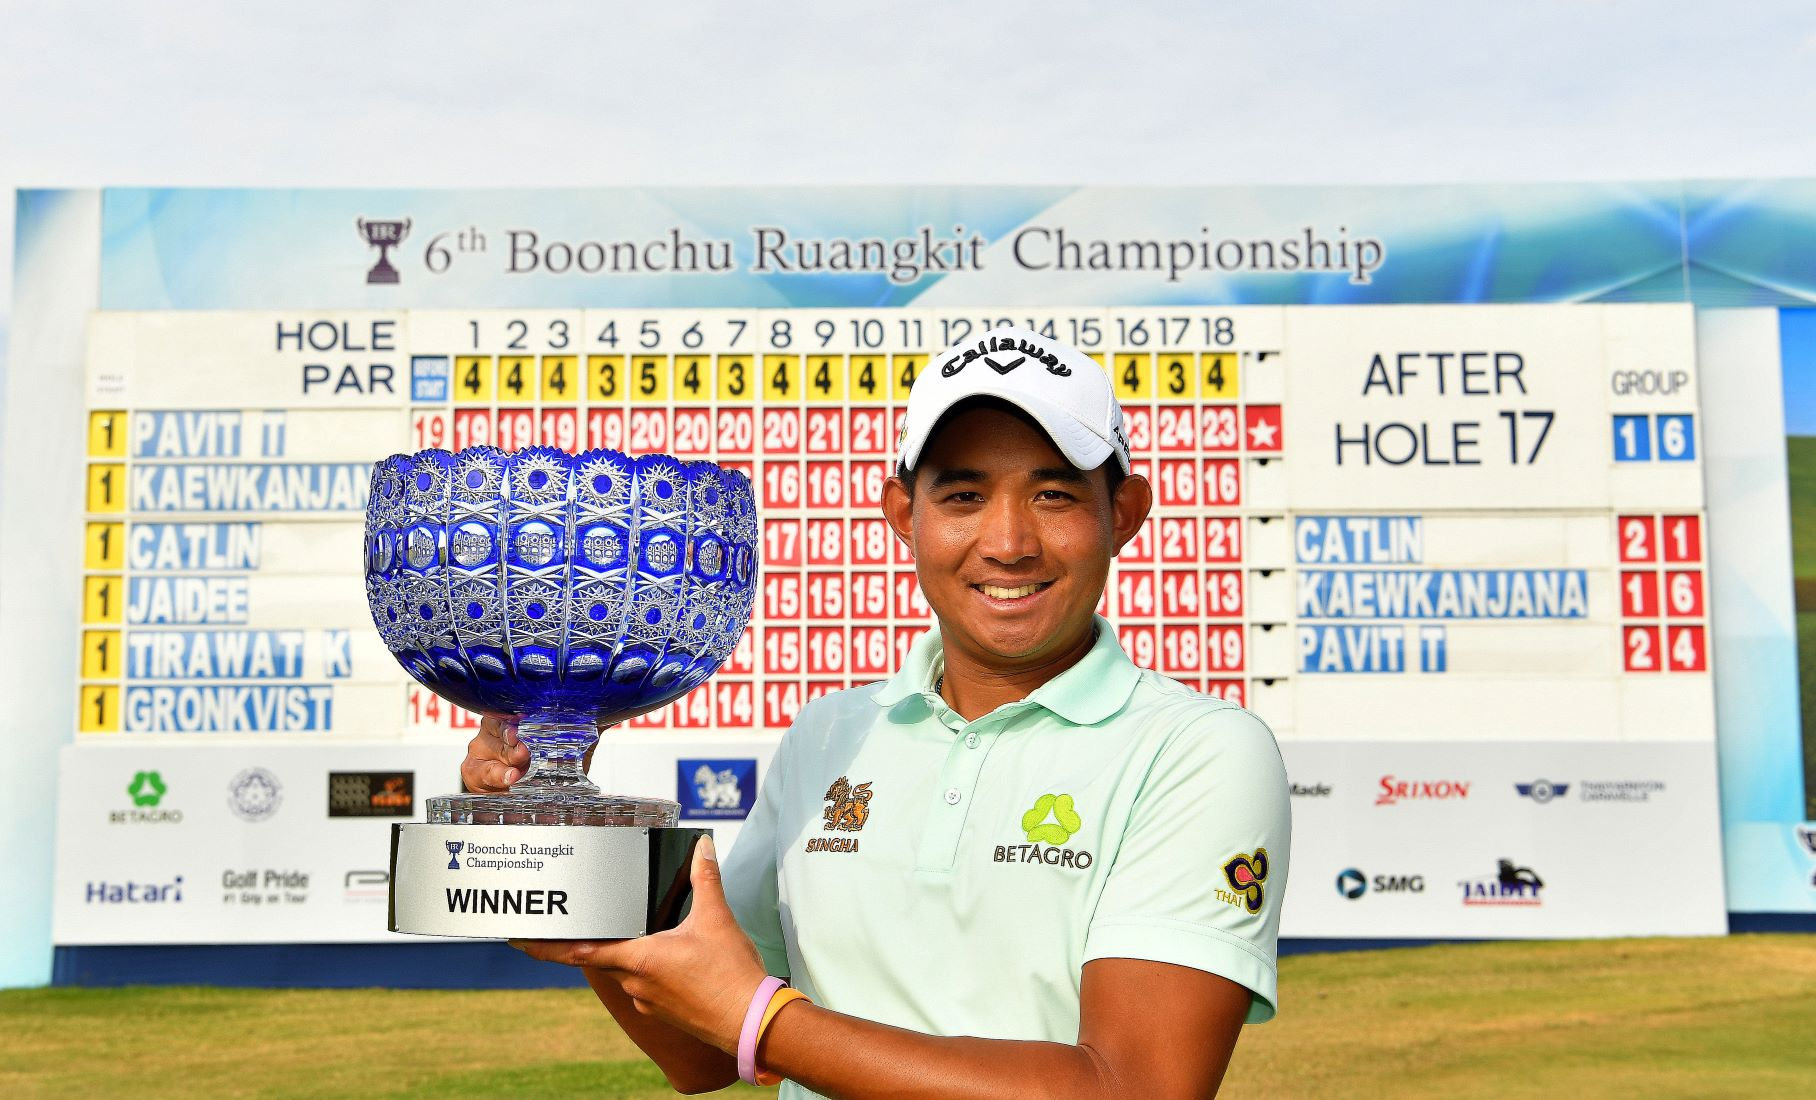 Pavit clinches record seventh ADT victory at Boonchu Ruangkit Championship